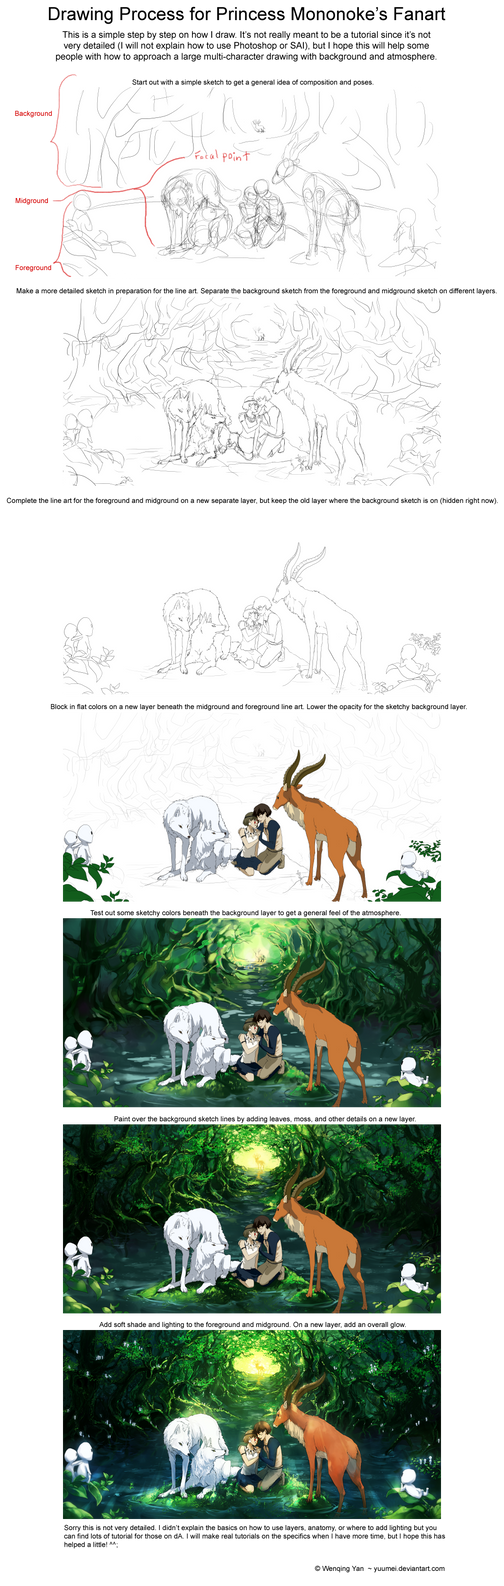 Princess Mononoke Process by yuumei